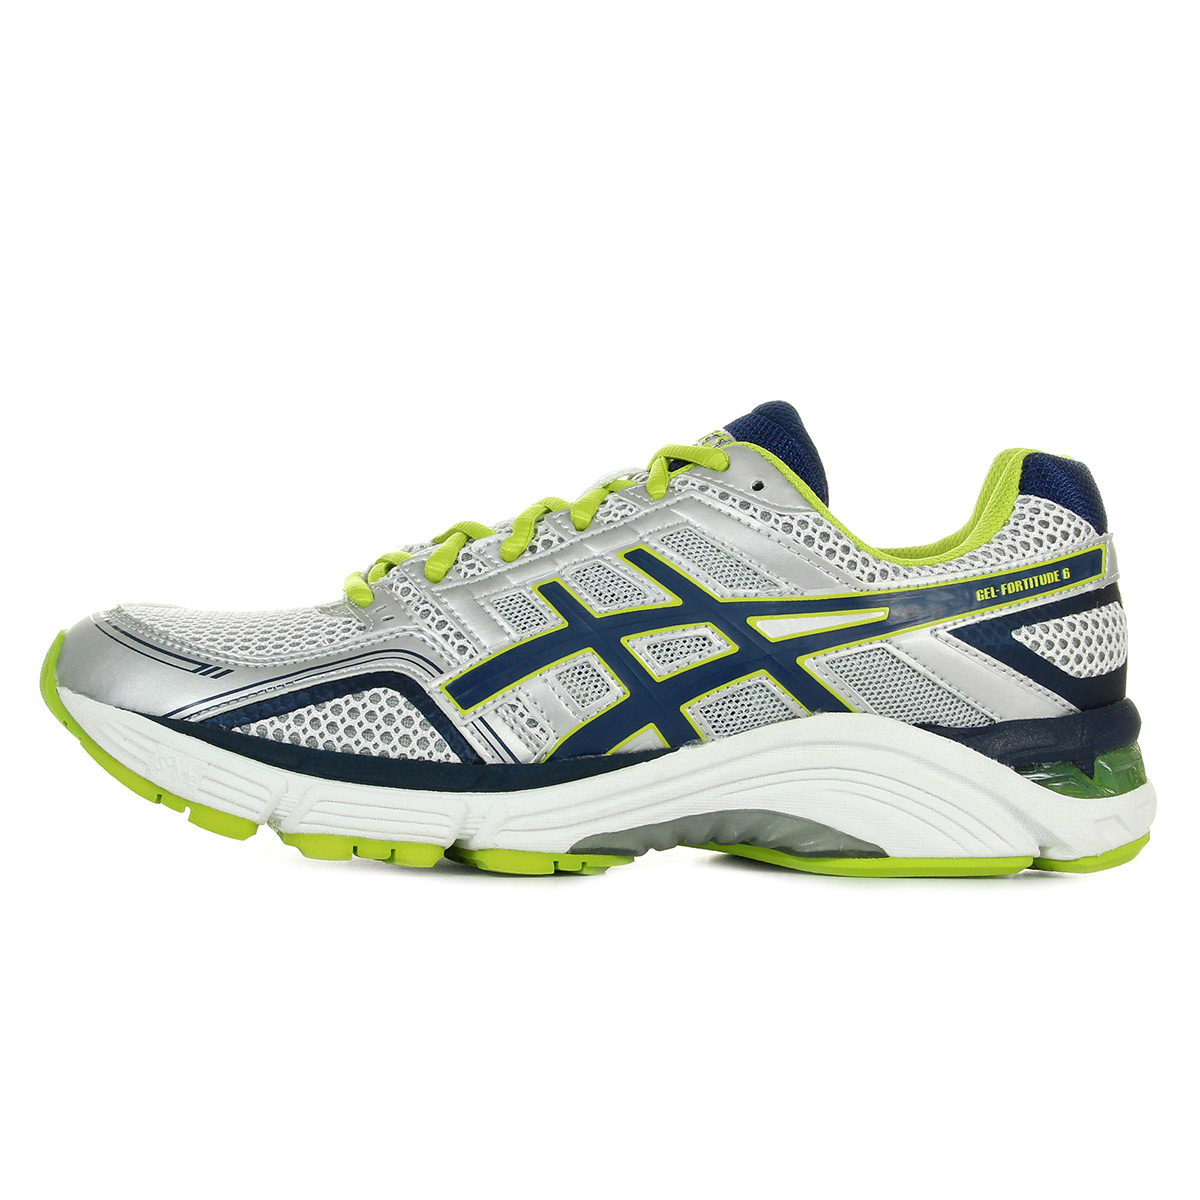 chaussures asics homme gel fortitude 6 running taille blanc blanche textile ebay. Black Bedroom Furniture Sets. Home Design Ideas